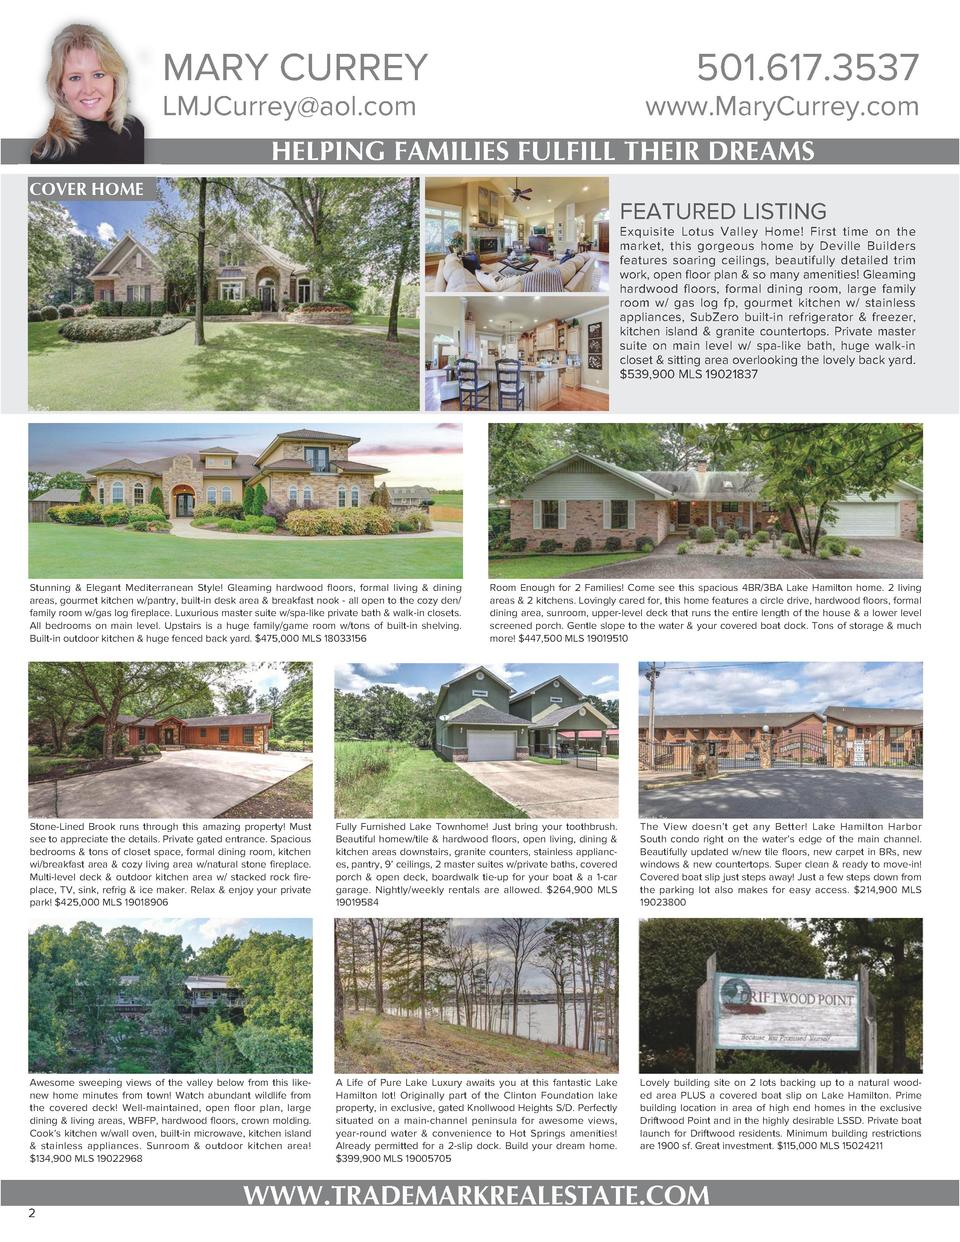 MARY CURREY  501.617.3537  LMJCurrey aol.com  www.MaryCurrey.com  HELPING FAMILIES FULFILL THEIR DREAMS COVER HOME  FEATUR...